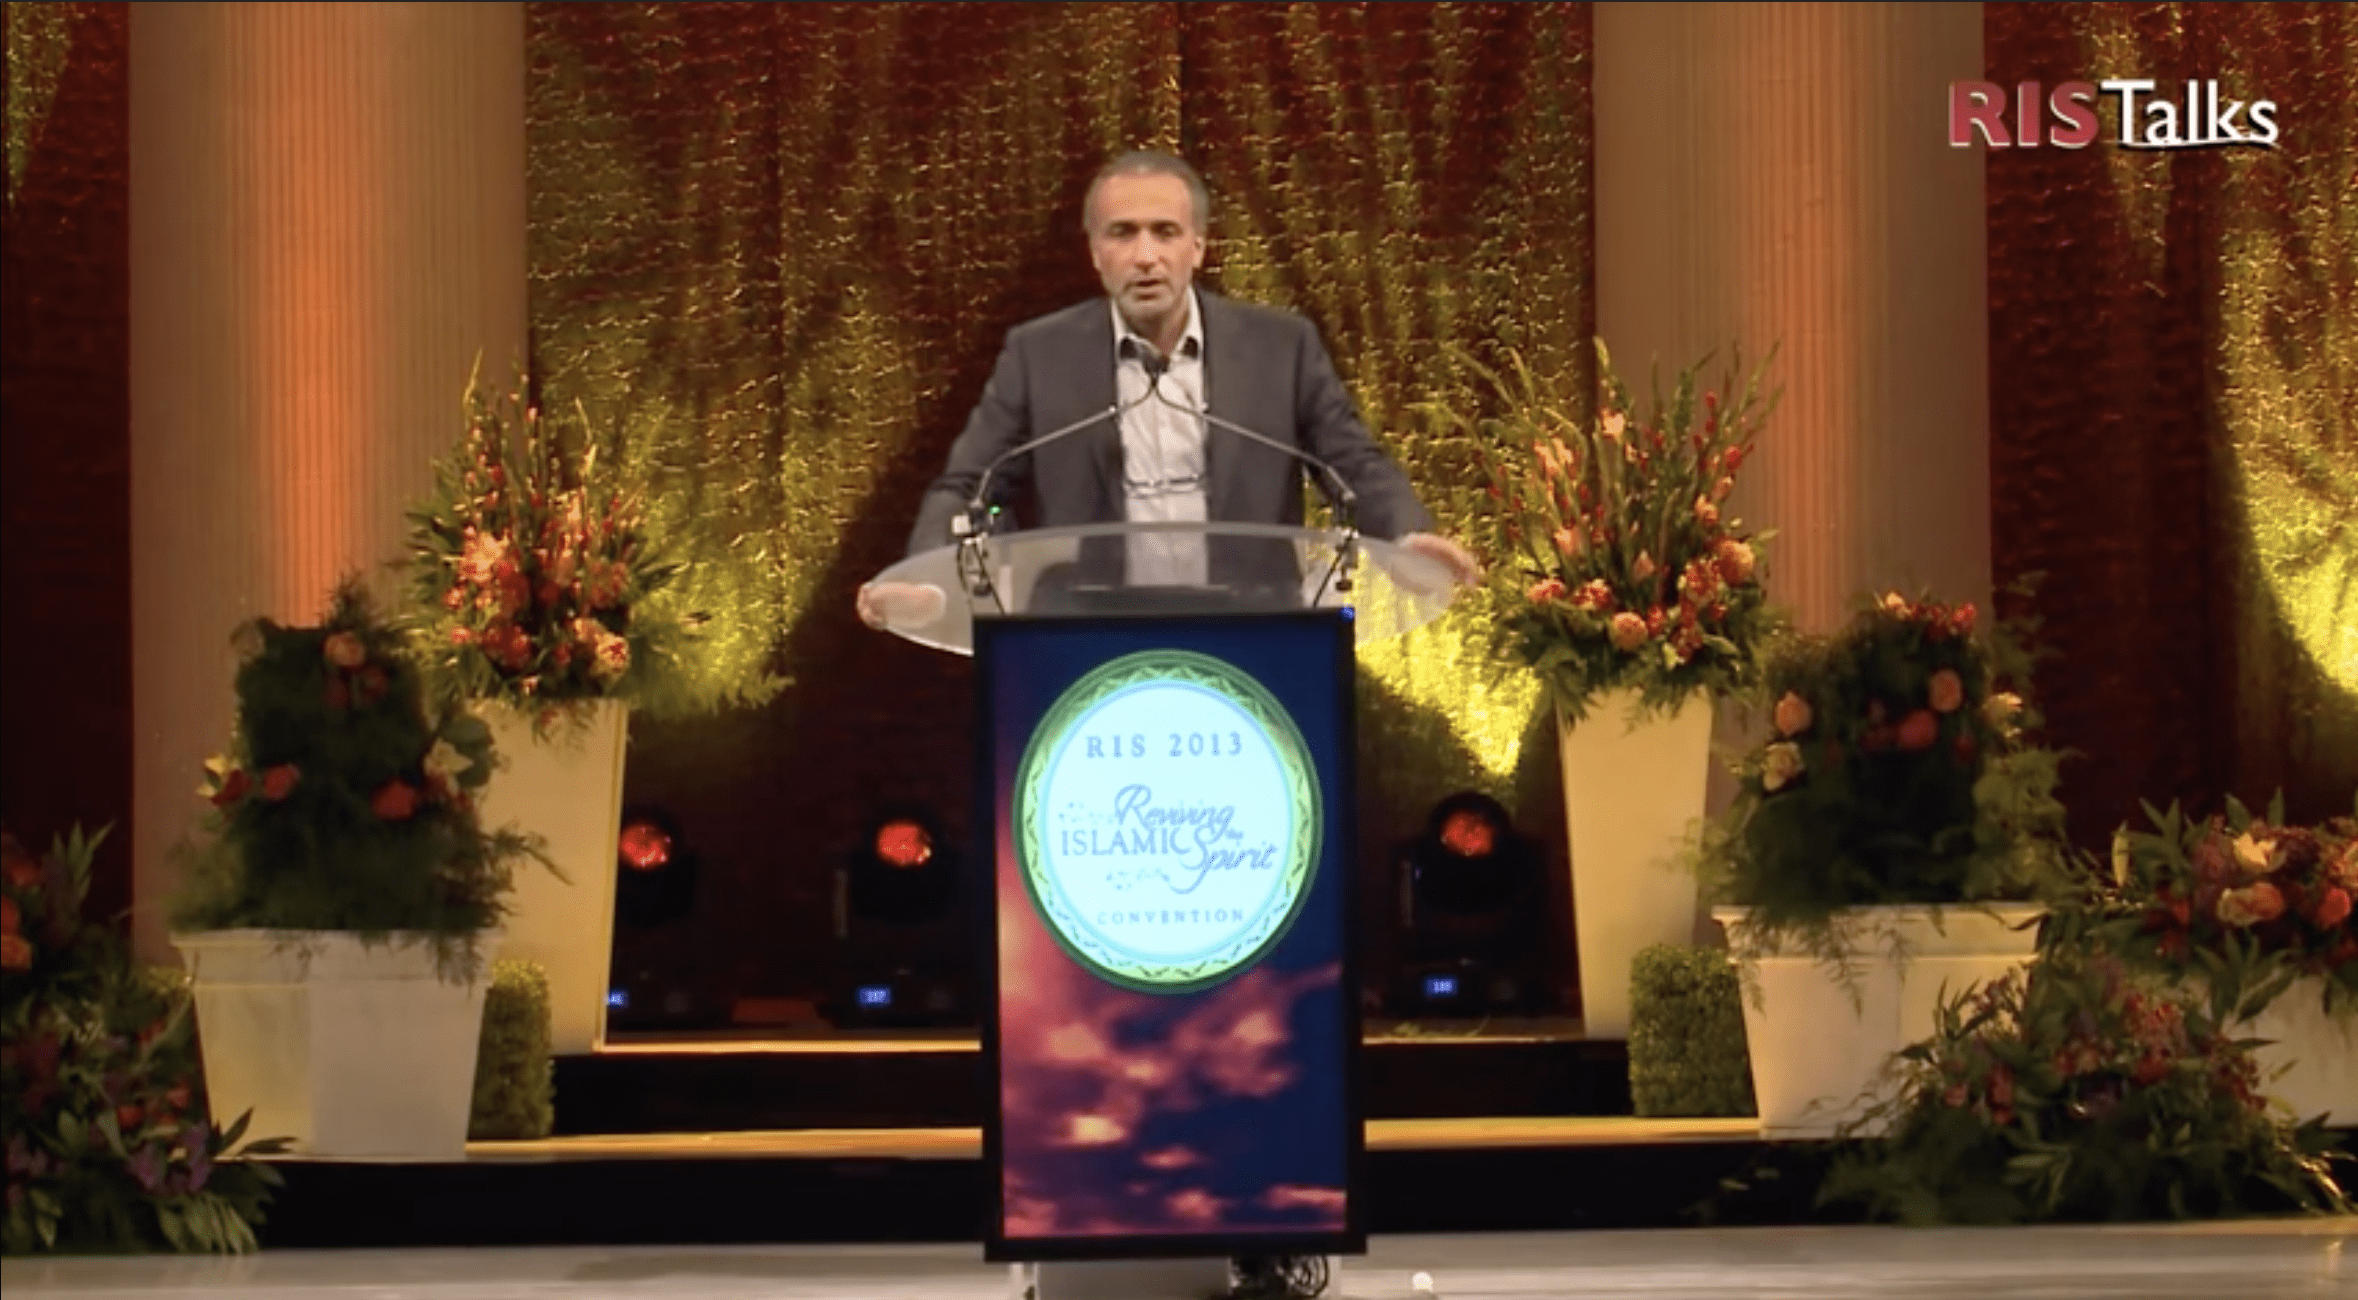 Tariq Ramadan – Respecting Others